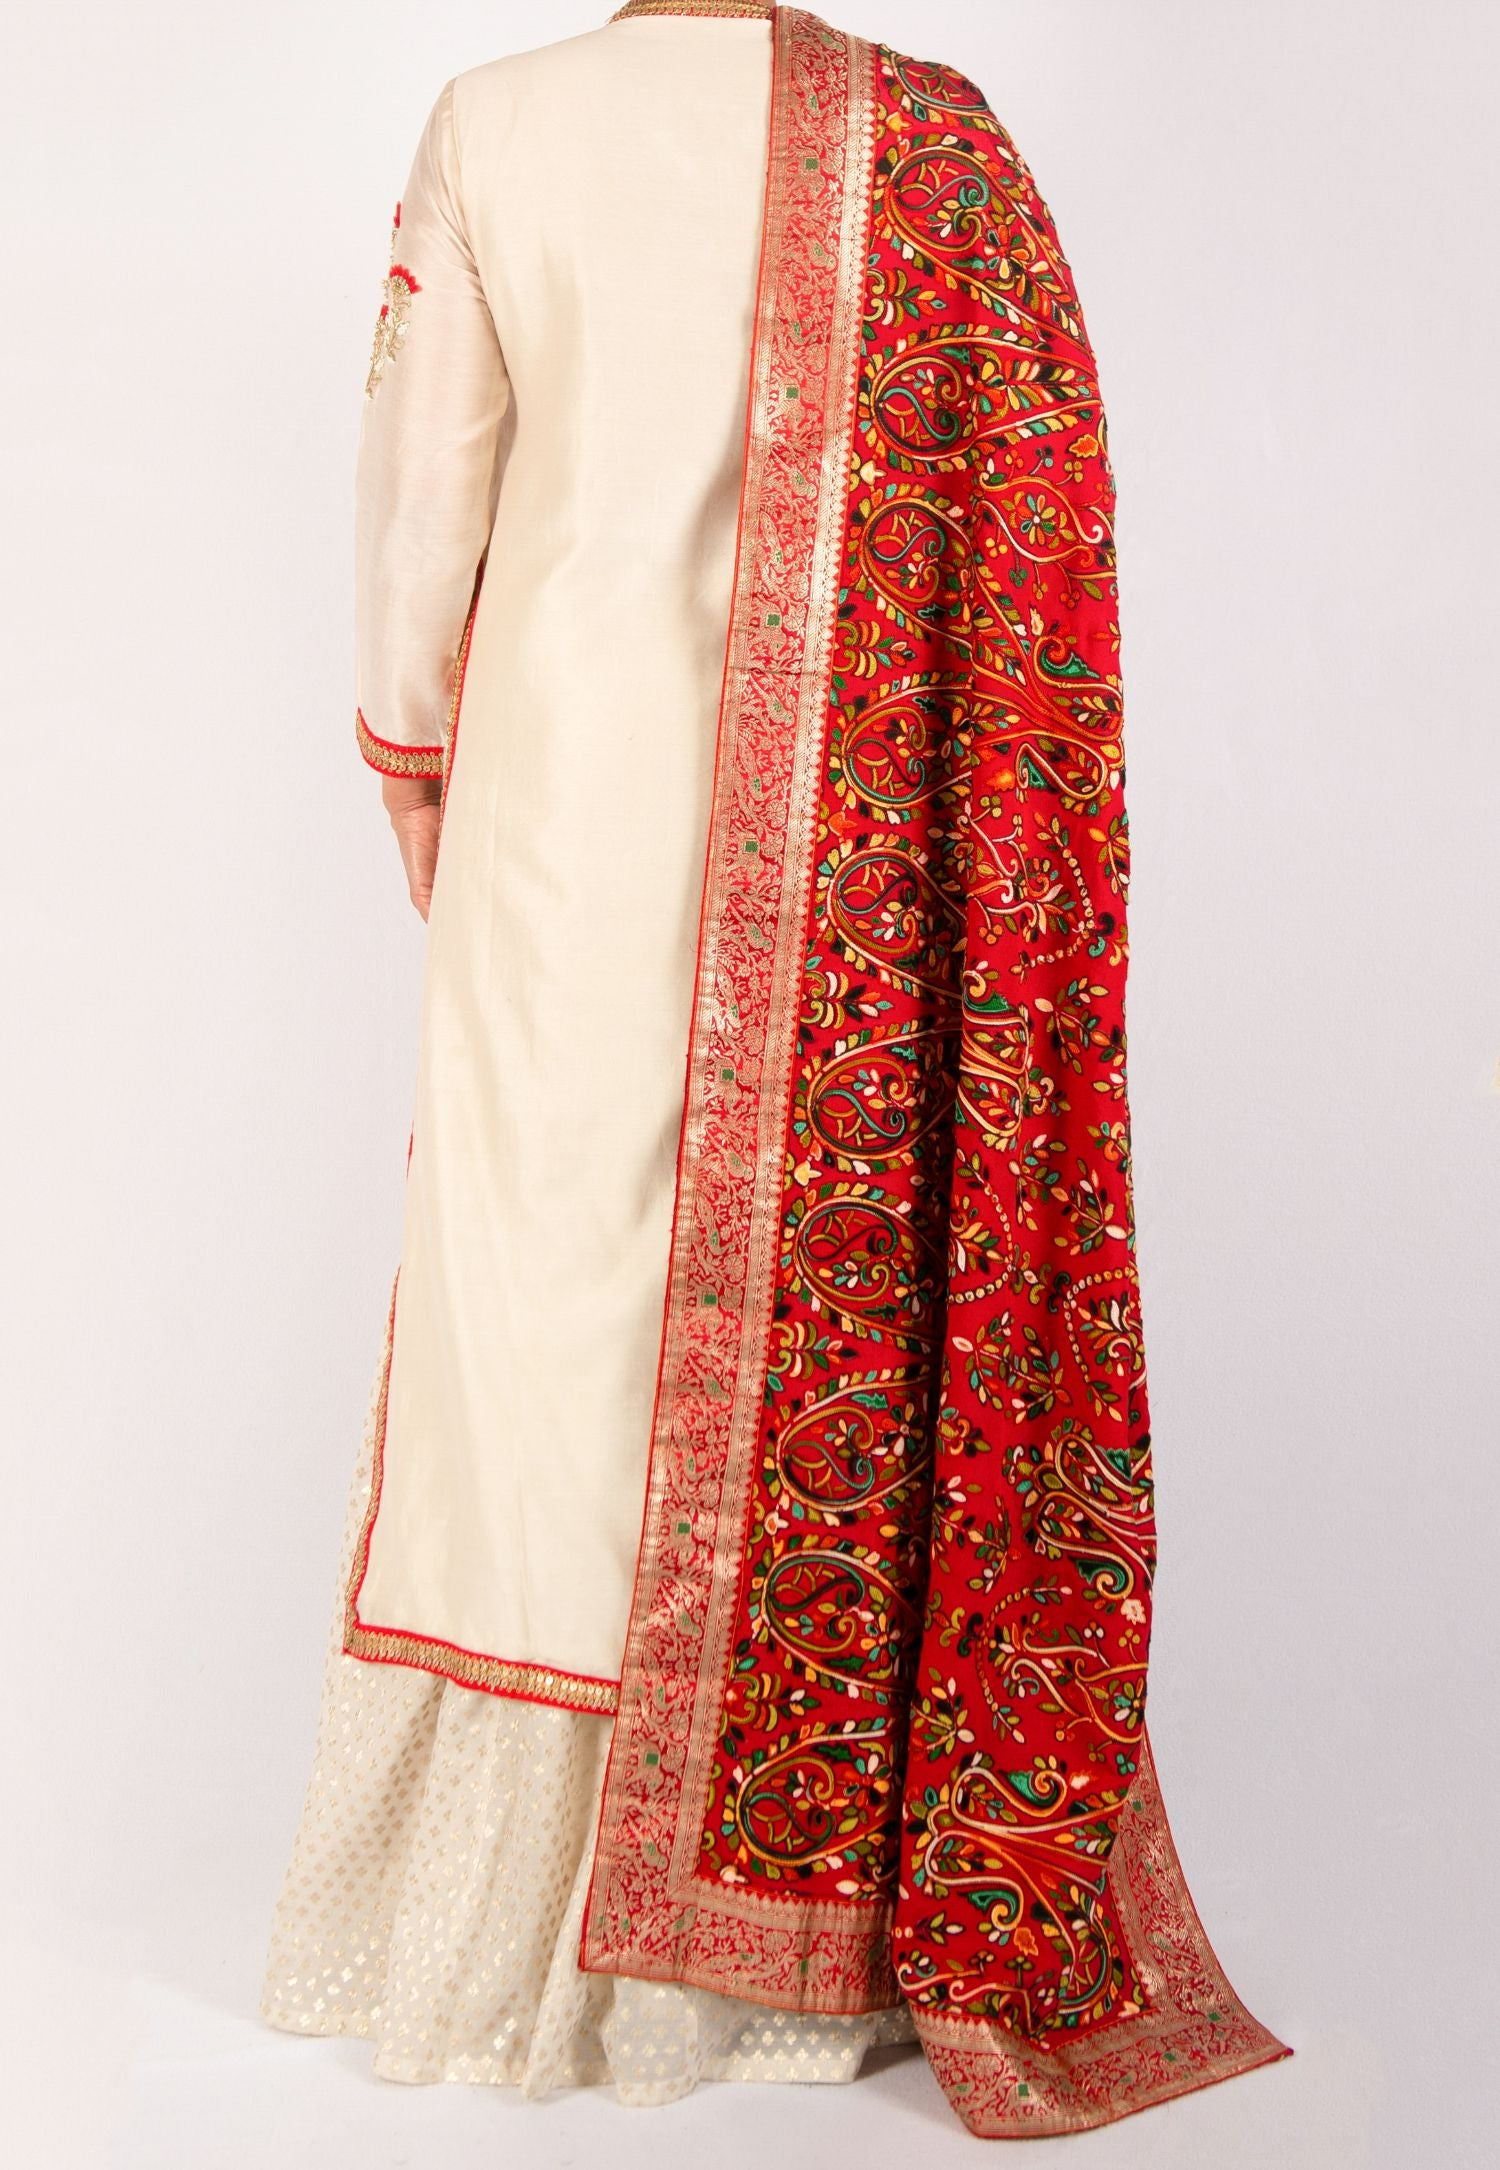 OFF-WHITE AND RED SILK LEHENGA SET